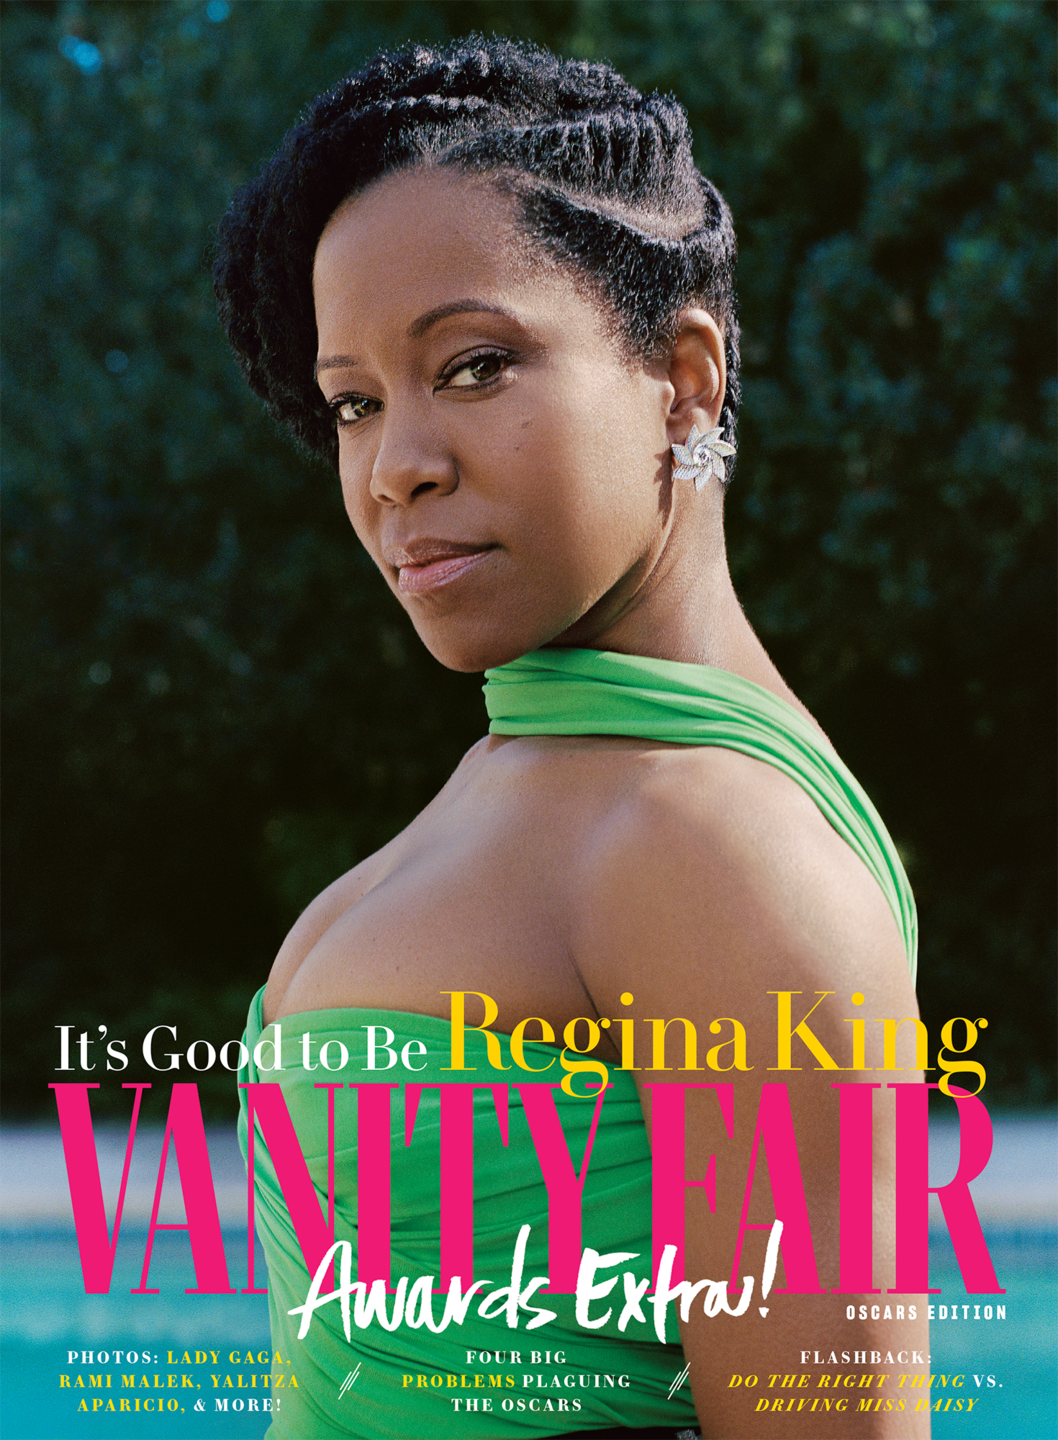 Regina King is Gorgeous on the cover of Vanity Fair's Award Extra Magazine